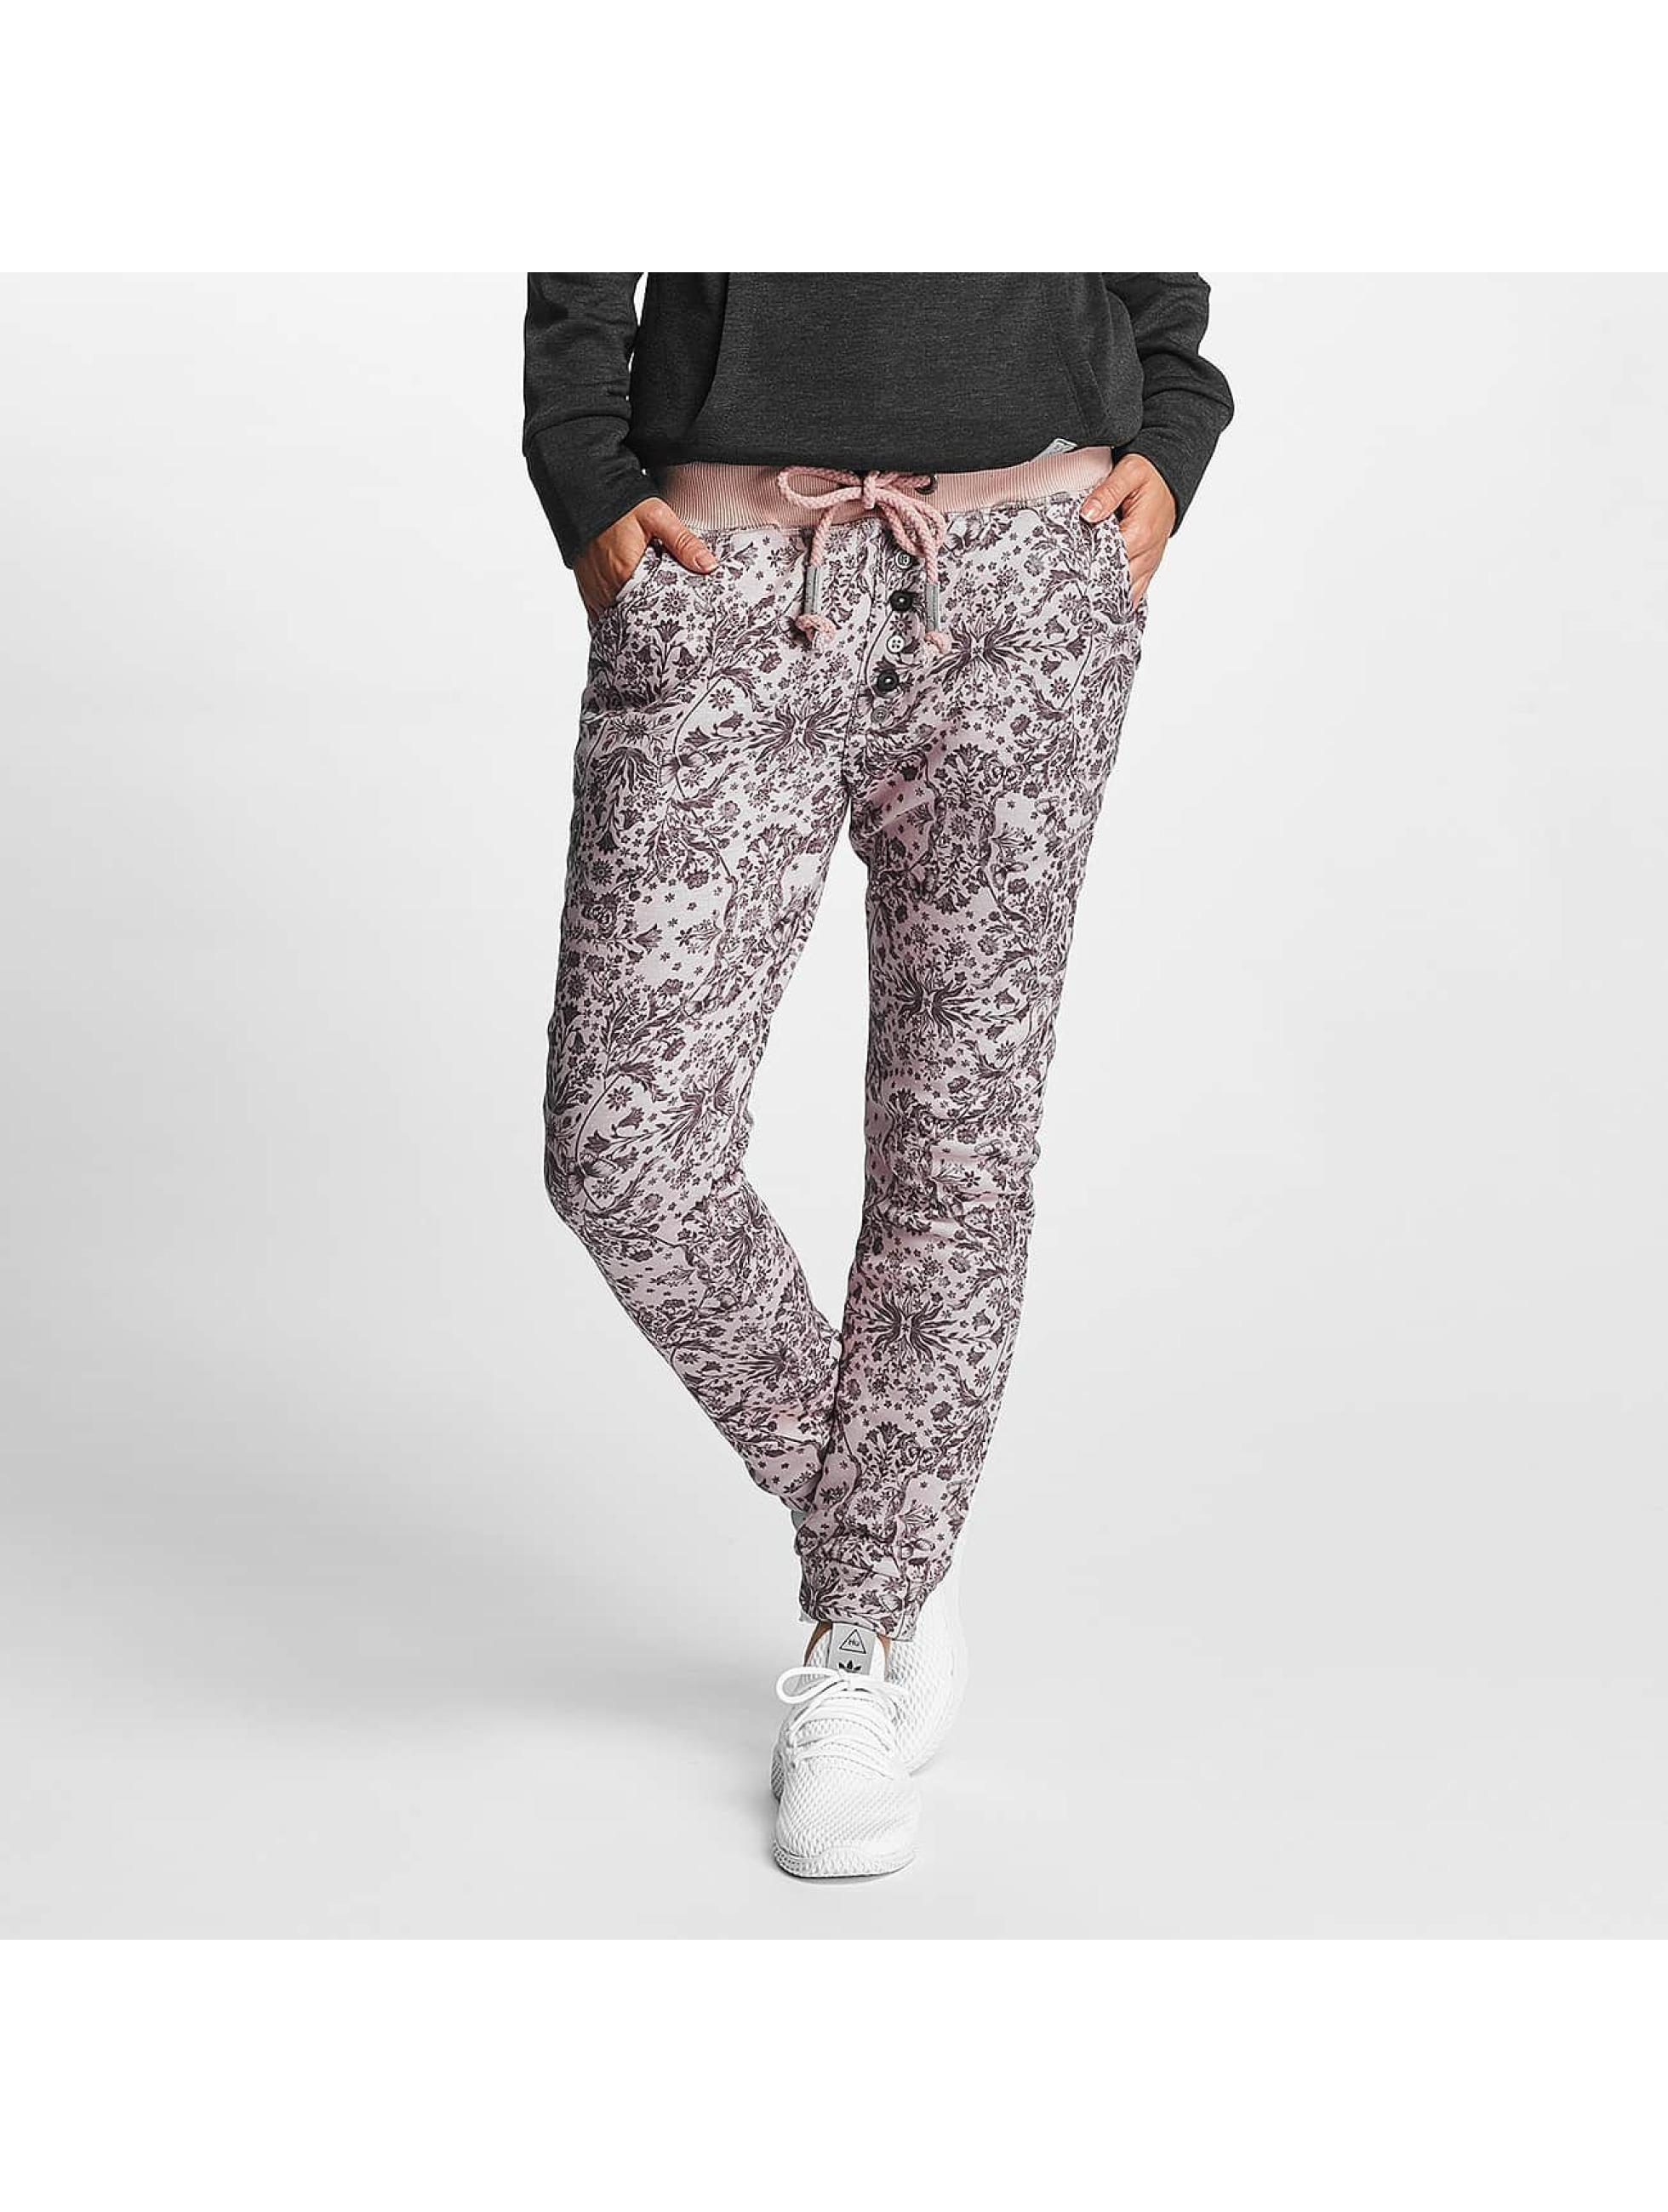 Sublevel Frauen Jogginghose Allover Printed in rosa